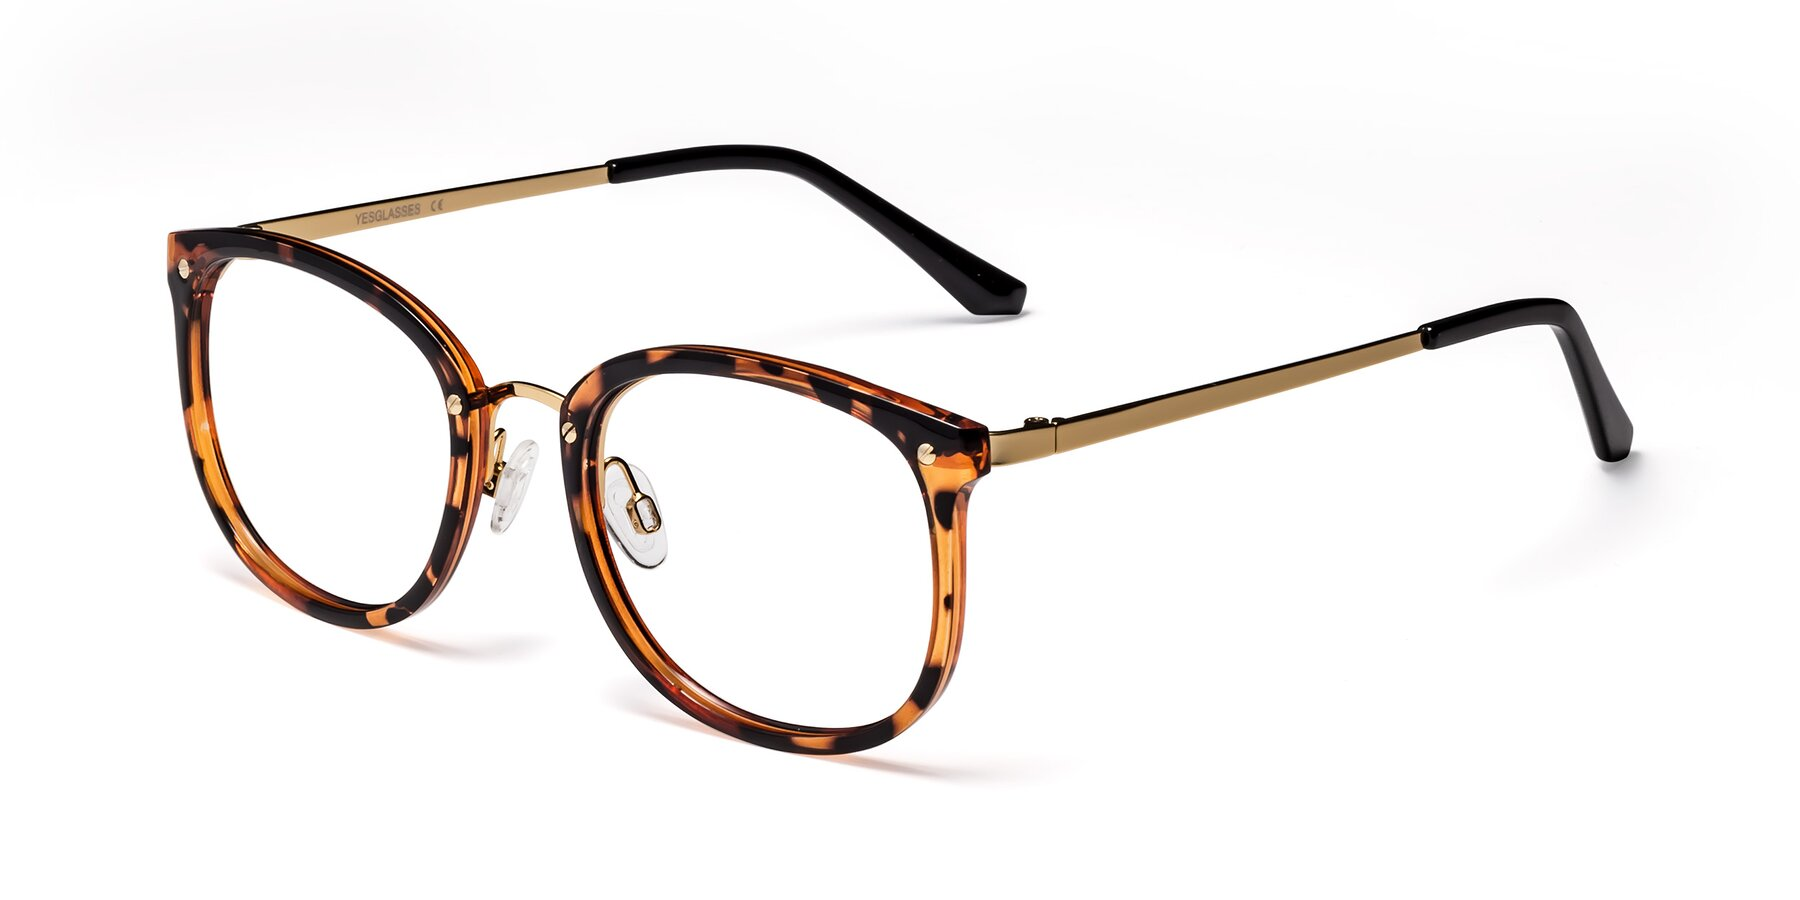 Angle of Timeless in Tortoise-Golden with Clear Blue Light Blocking Lenses